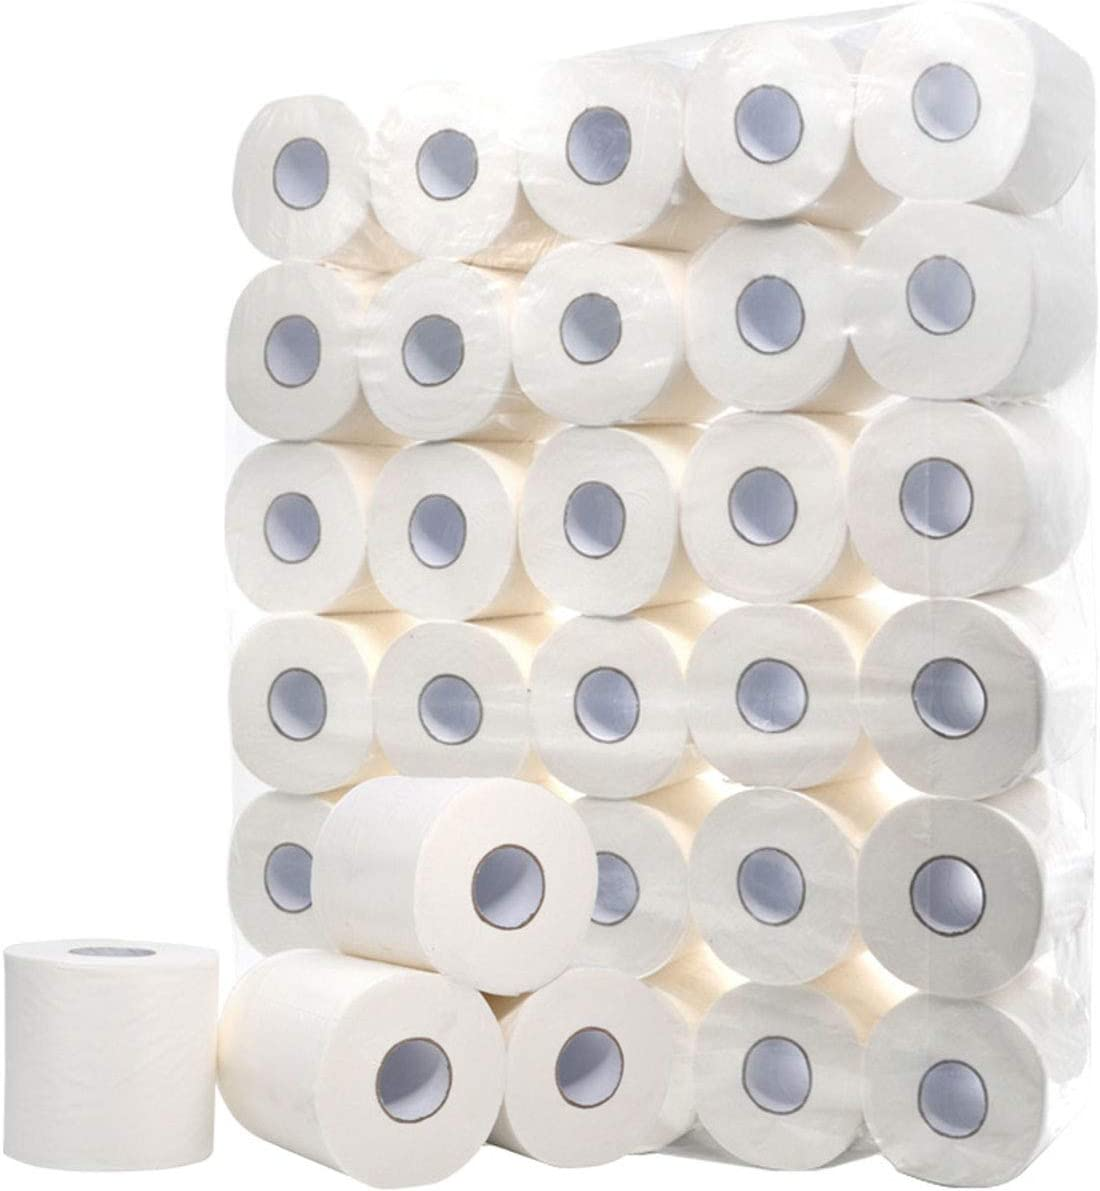 256 Sheets 5oz Per Roll Soft Home Kitchen Lengthen//Thicken and Strong//Highly Absorbent GARDWENS 12 Rolls Silky 4-Ply